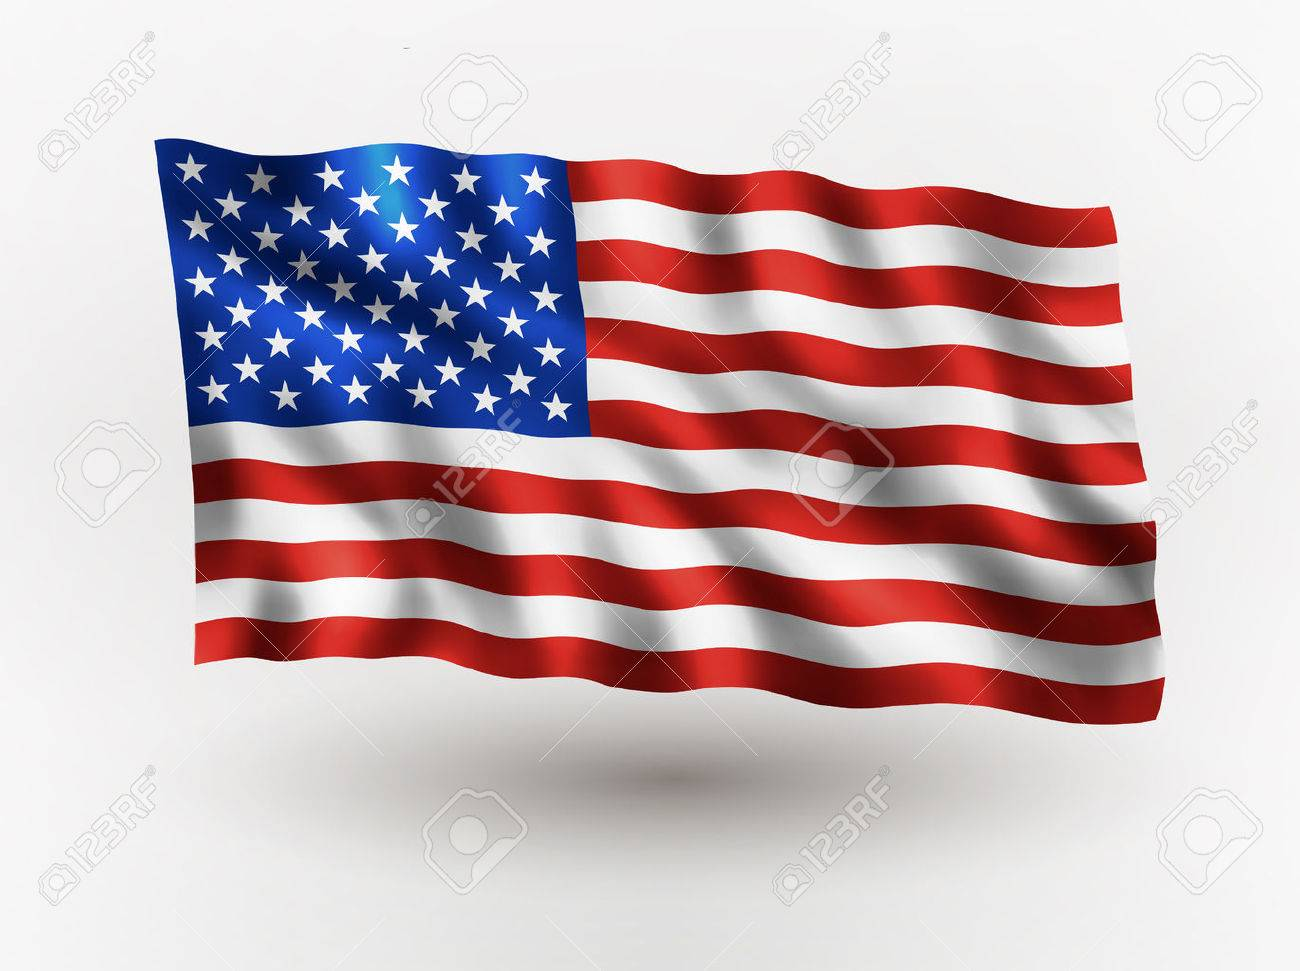 Illustration of waving USA flag, isolated flag icon, EPS 10 contains transparency. - 59196351